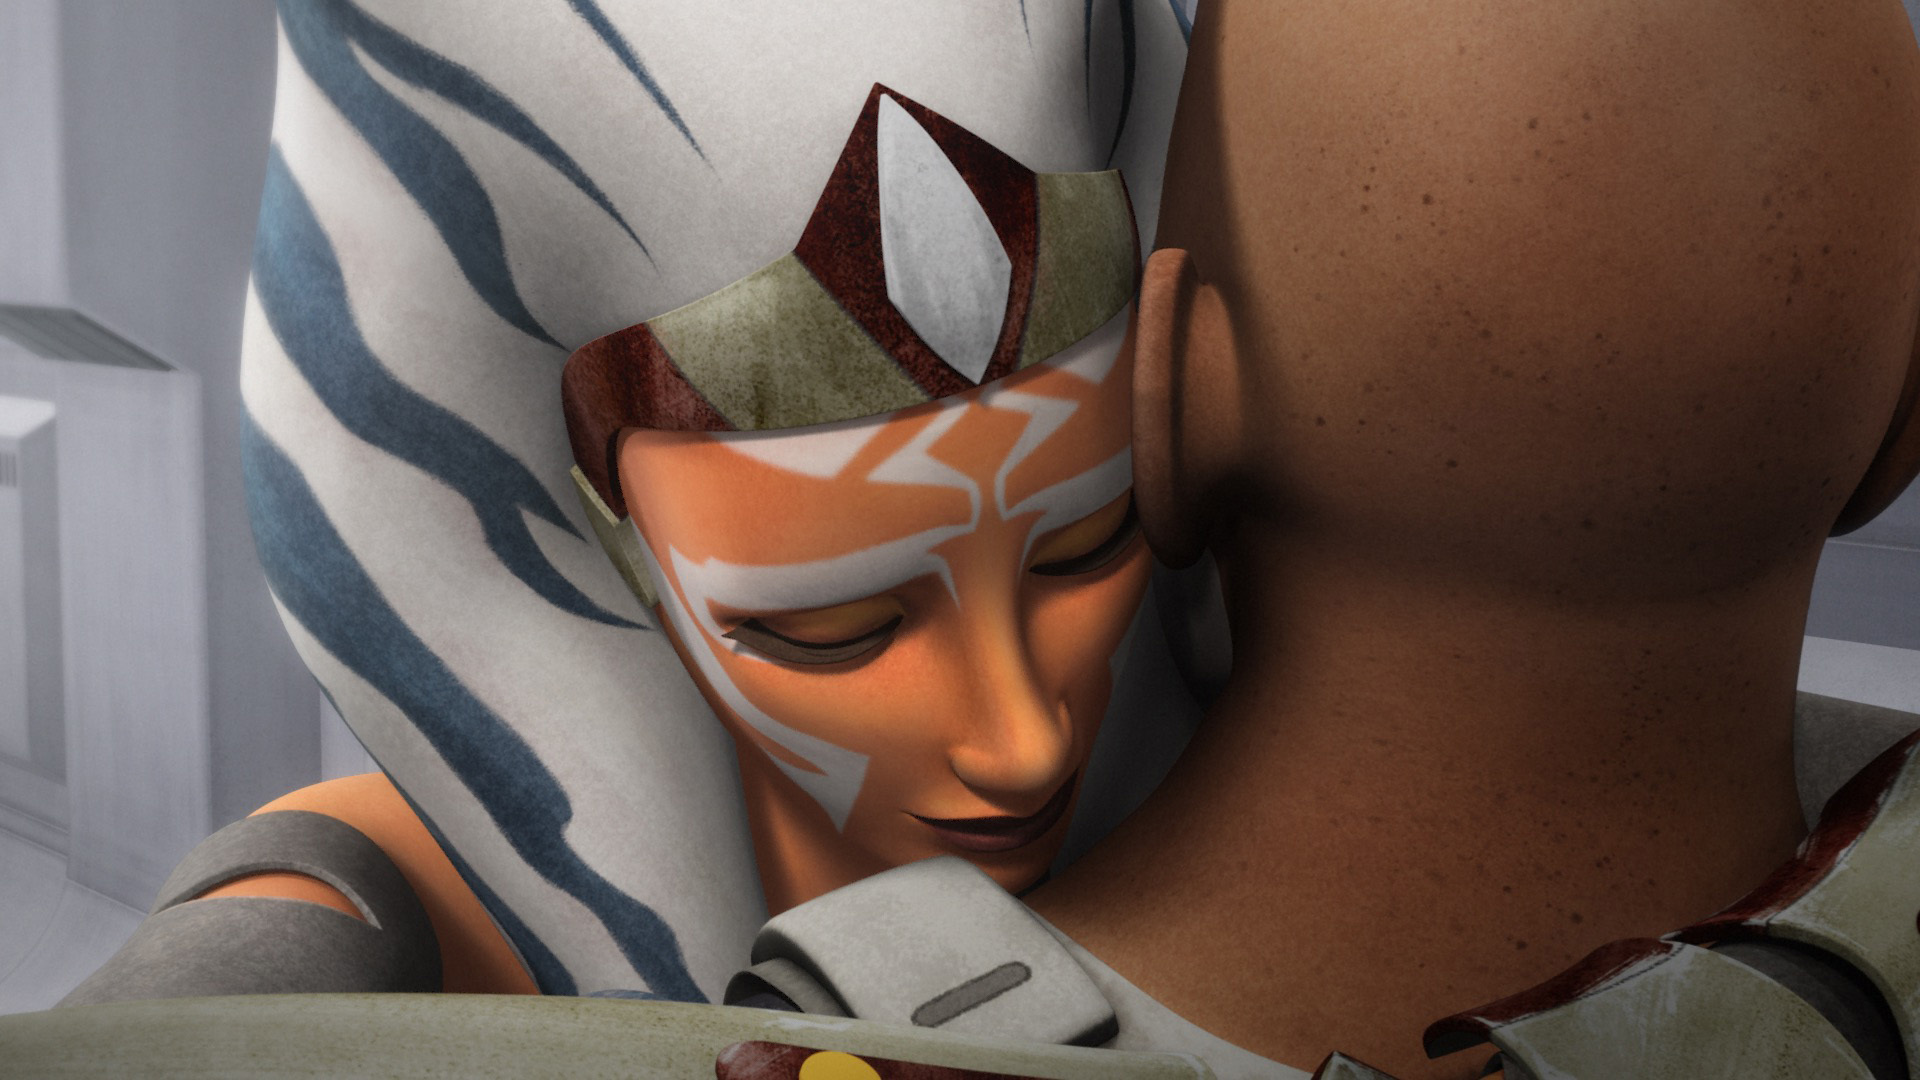 Ahsoka Tano/Relationships | Star Wars Rebels Wiki | FANDOM